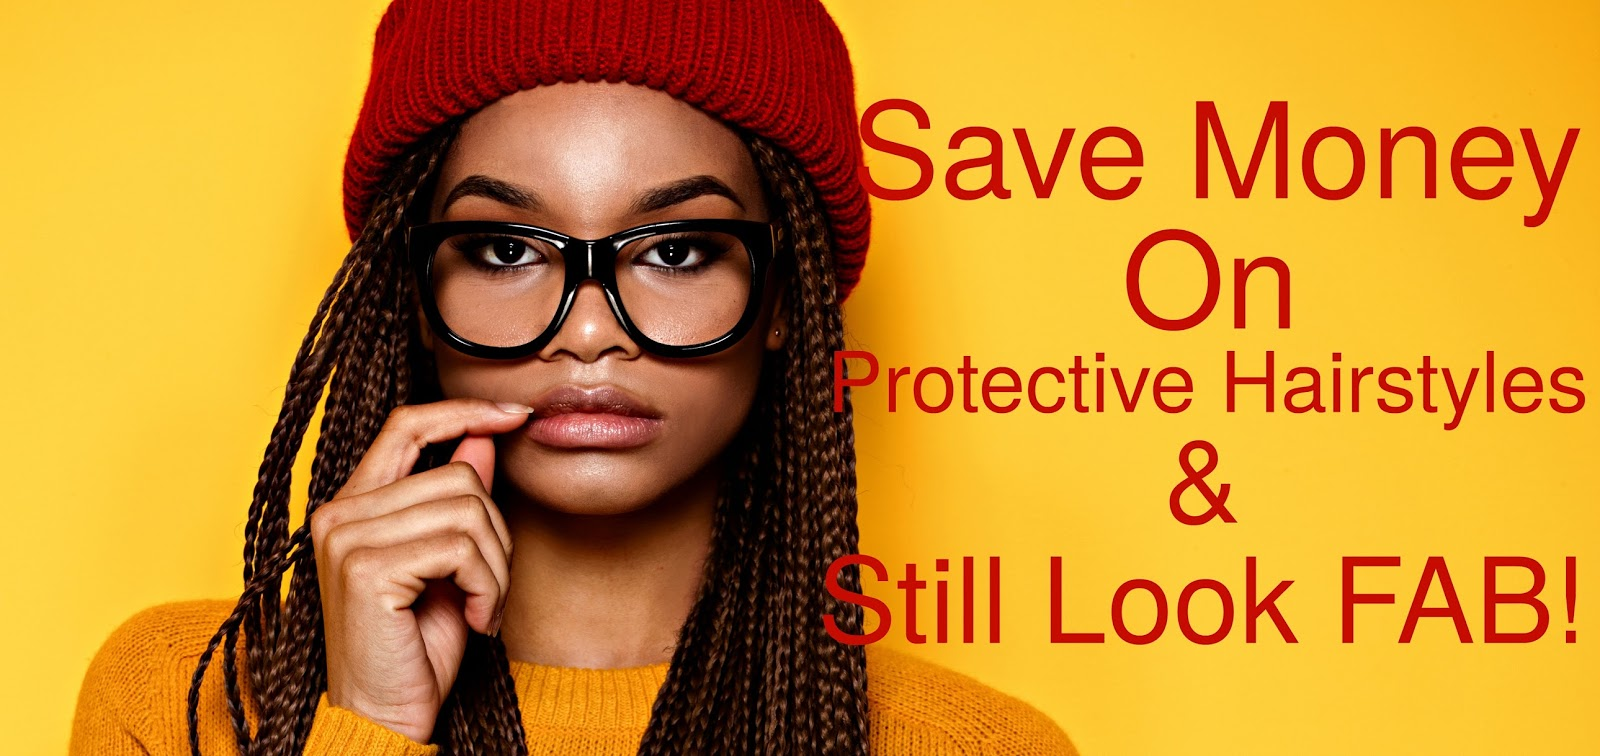 No one wants to break the bank on protective Hairstyles, but they also want to look good, so this article shows you how to rock them well and save money!